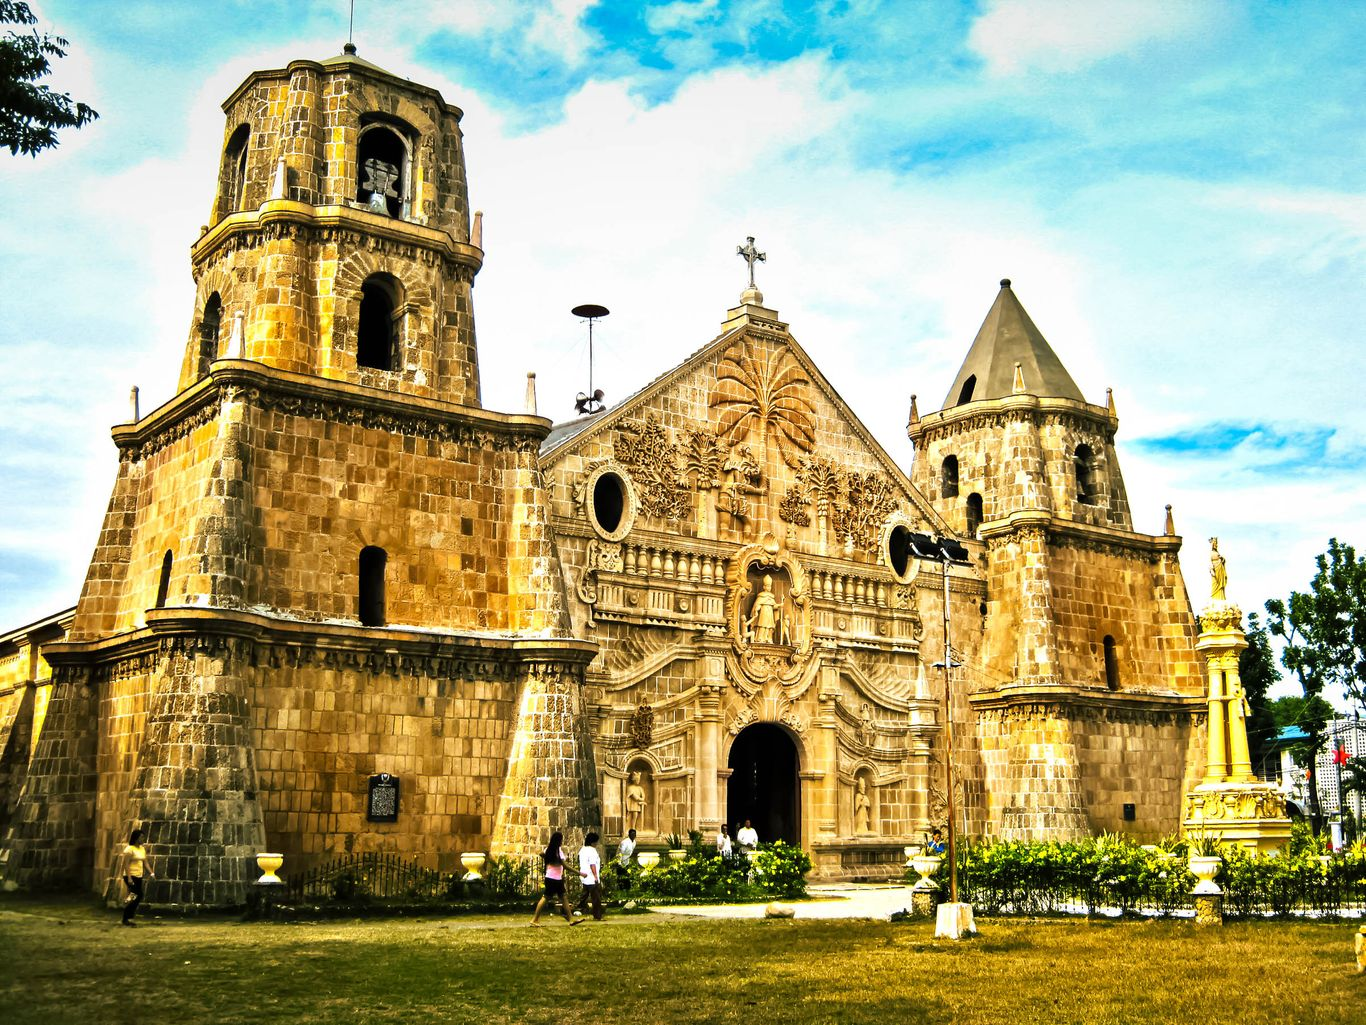 The wide facade and two thick bell towers of the old stone church of Miagao, one of the UNESCO World Heritage Sites in the Philippines